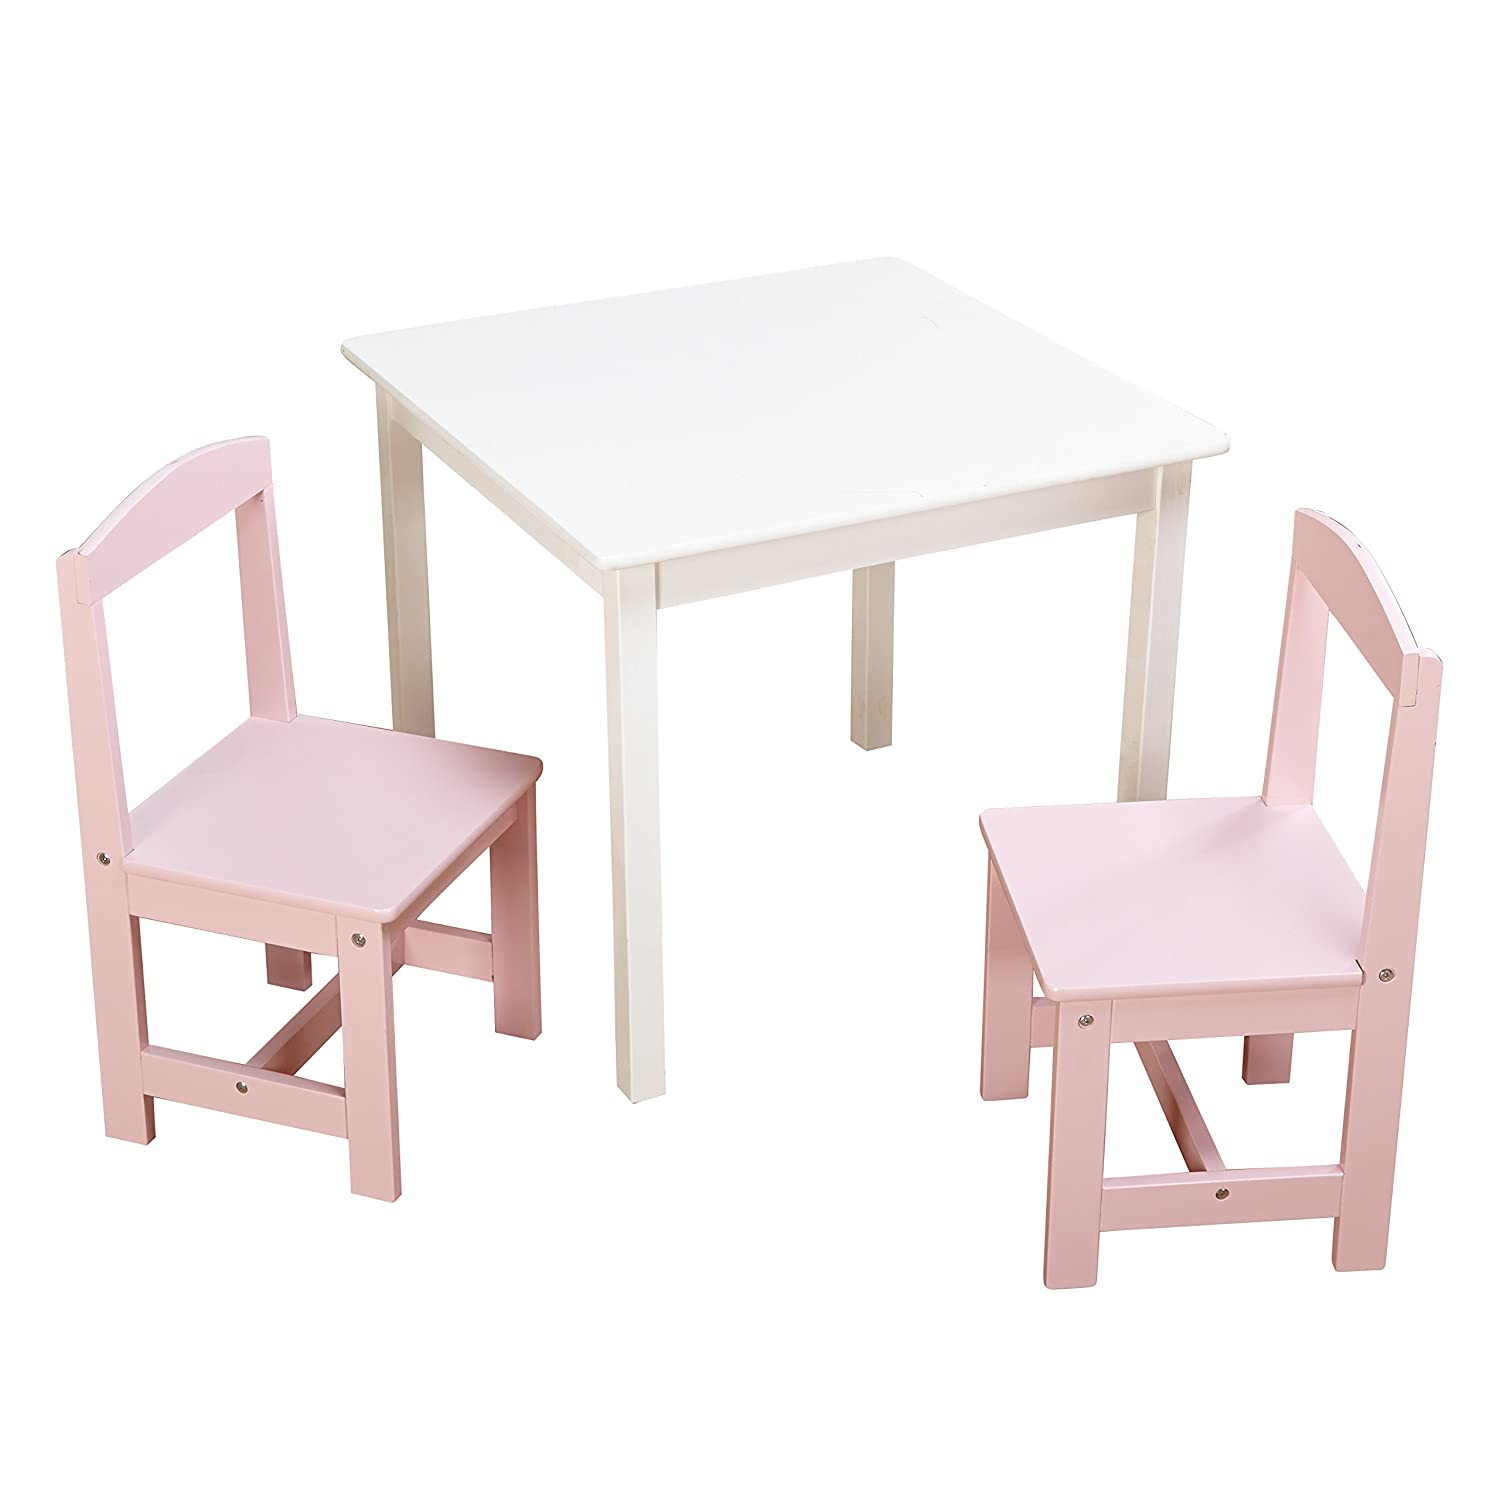 Peachy Target Marketing Systems 91120Whp Hayden 3 Pc Kids Table And Chairs White Pink Machost Co Dining Chair Design Ideas Machostcouk